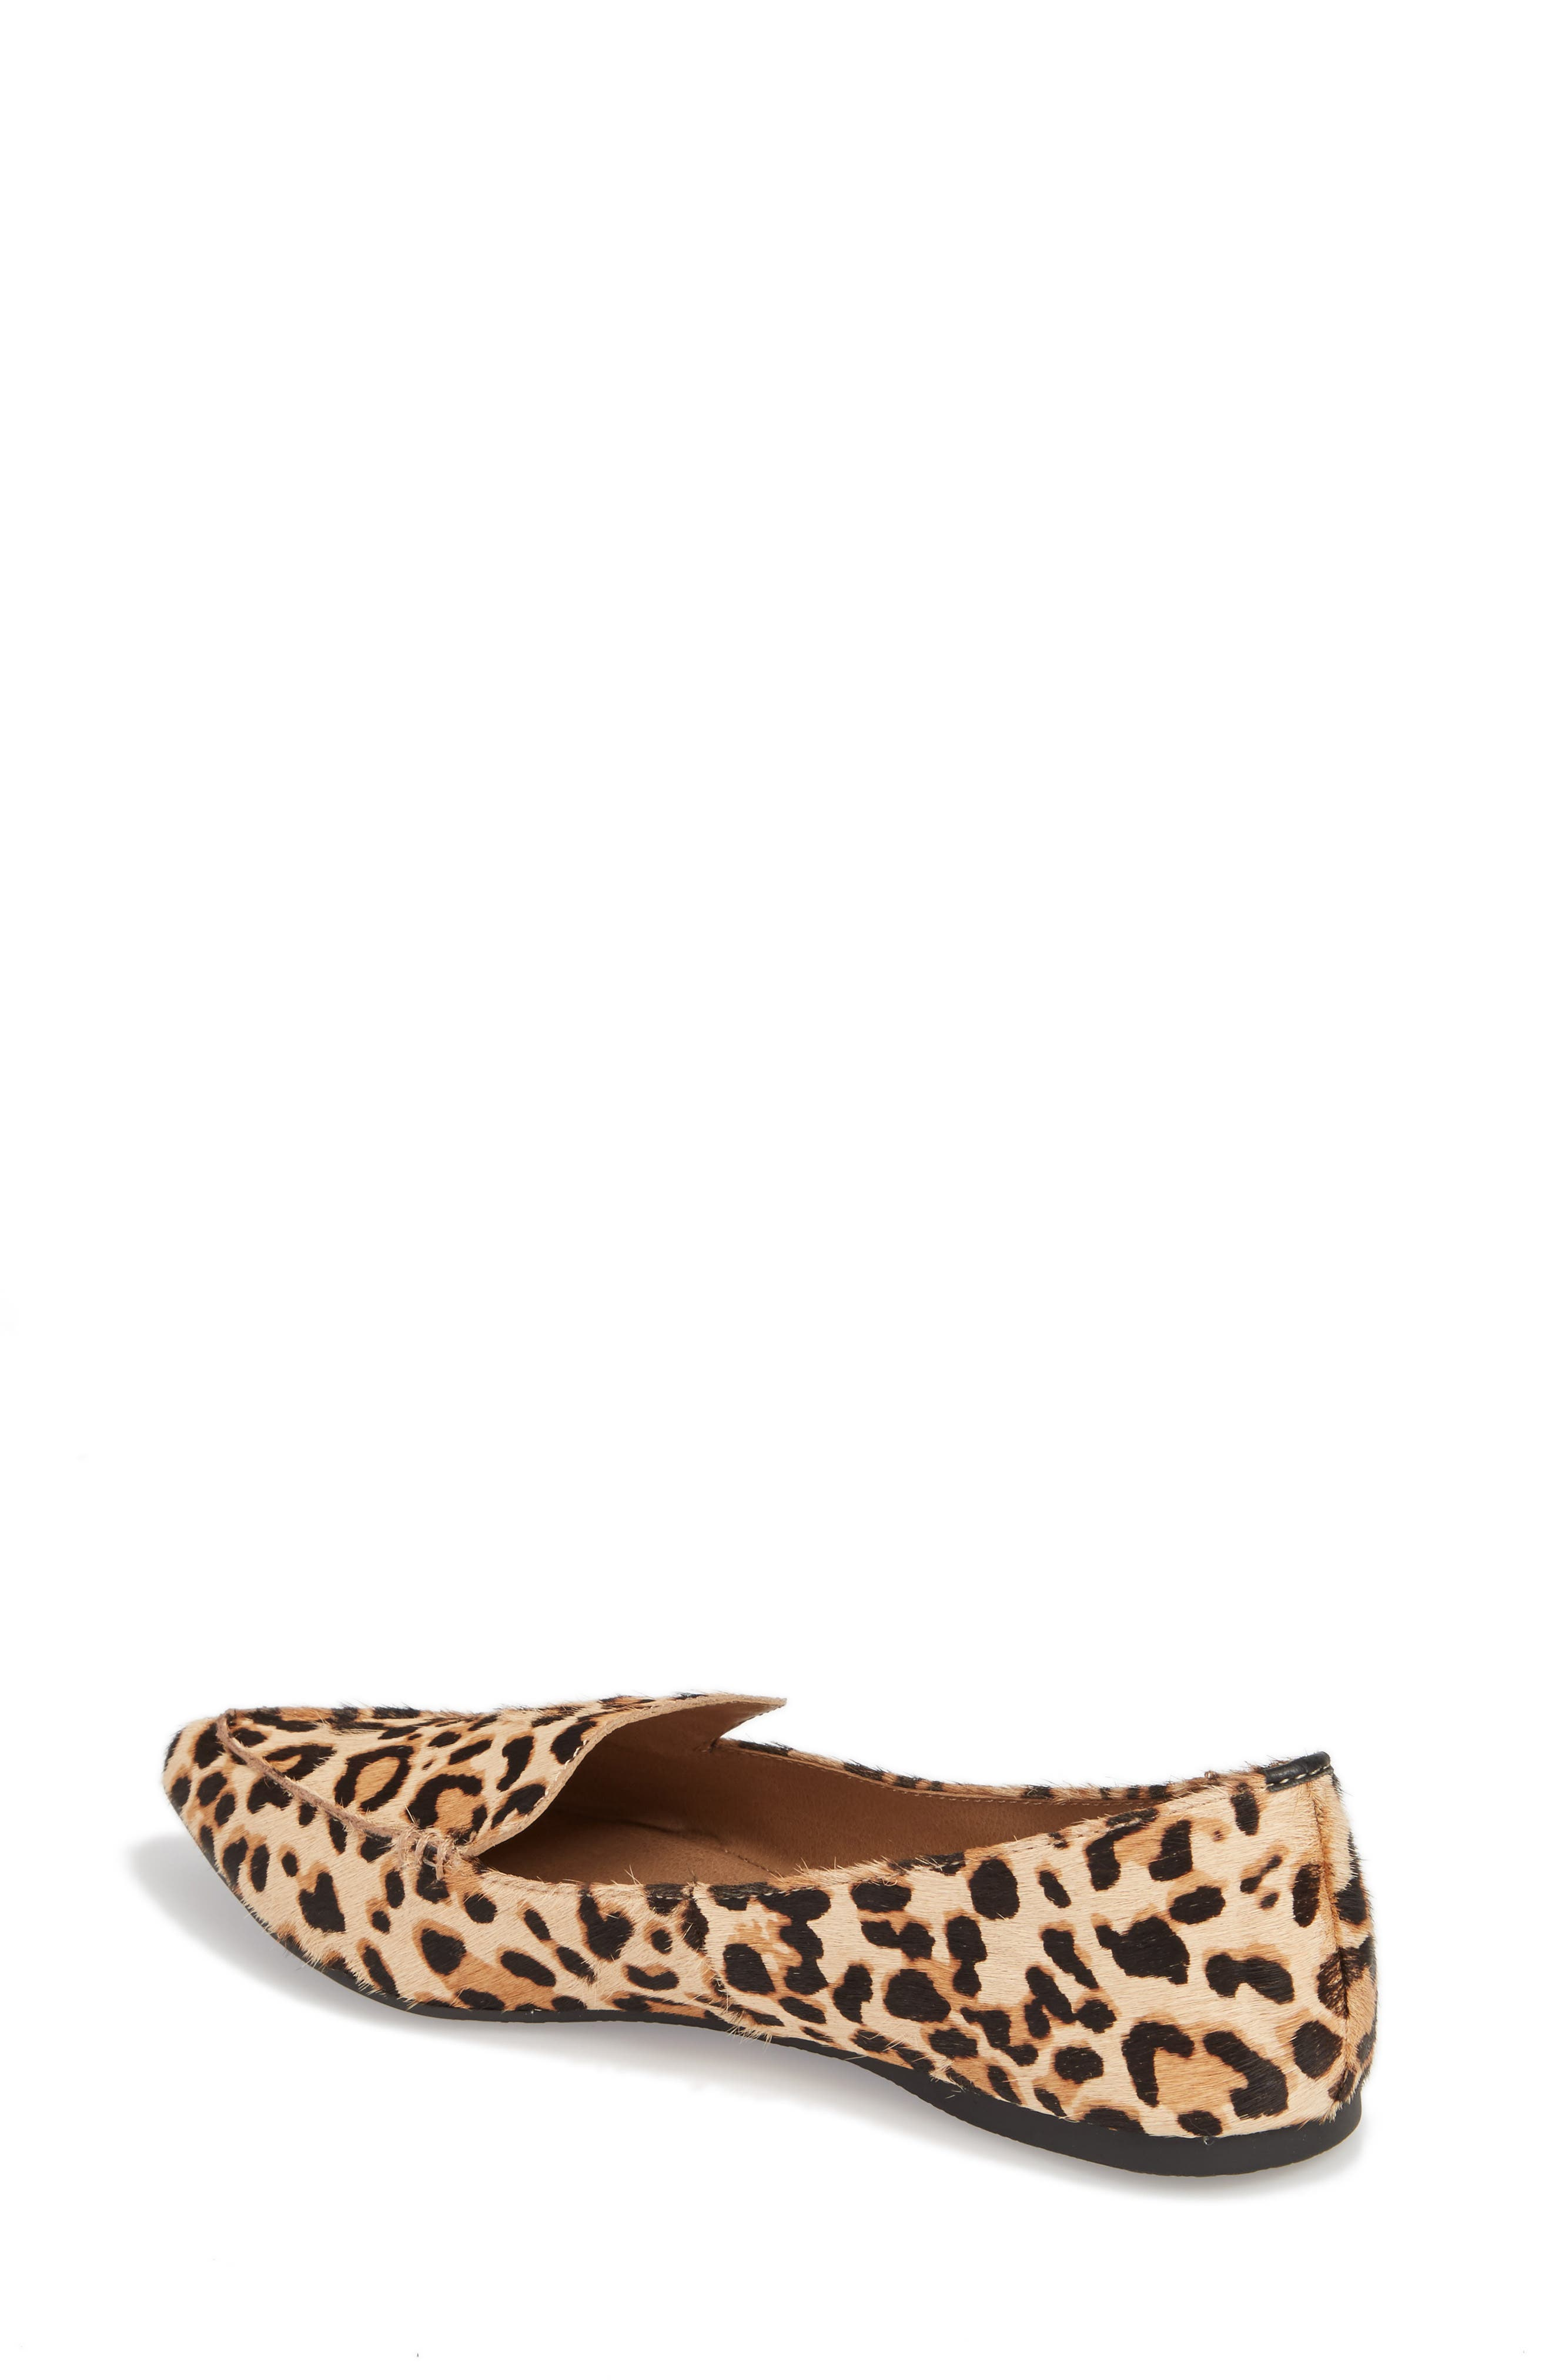 Steve MaddenFeatherl Loafer Flat